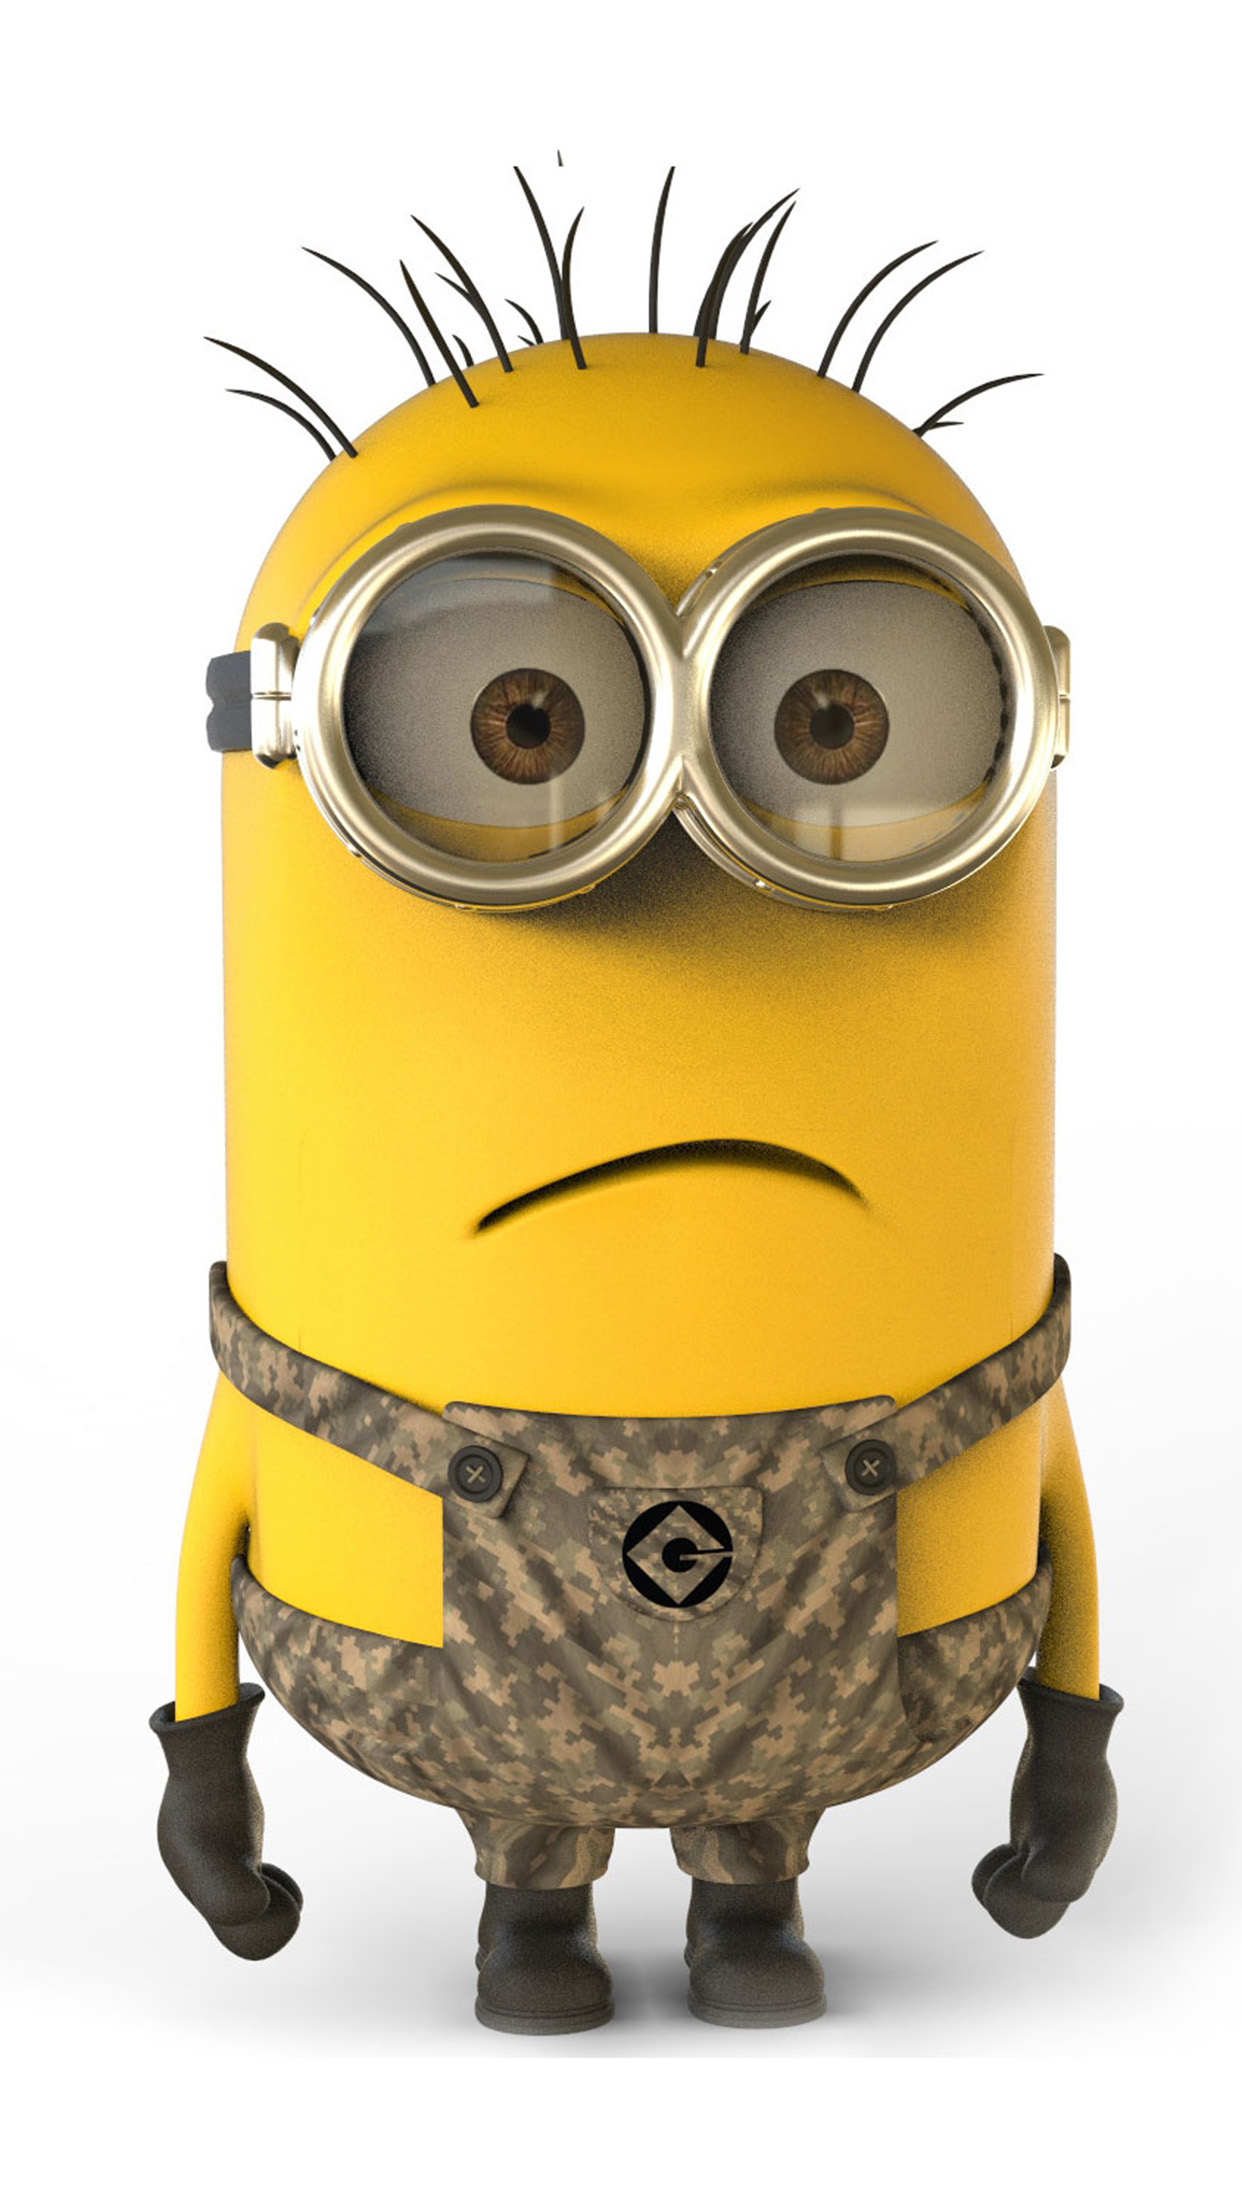 Despicable Me Call of duty 3Wallpapers iPhone Parallax Despicable Me art: Call of duty